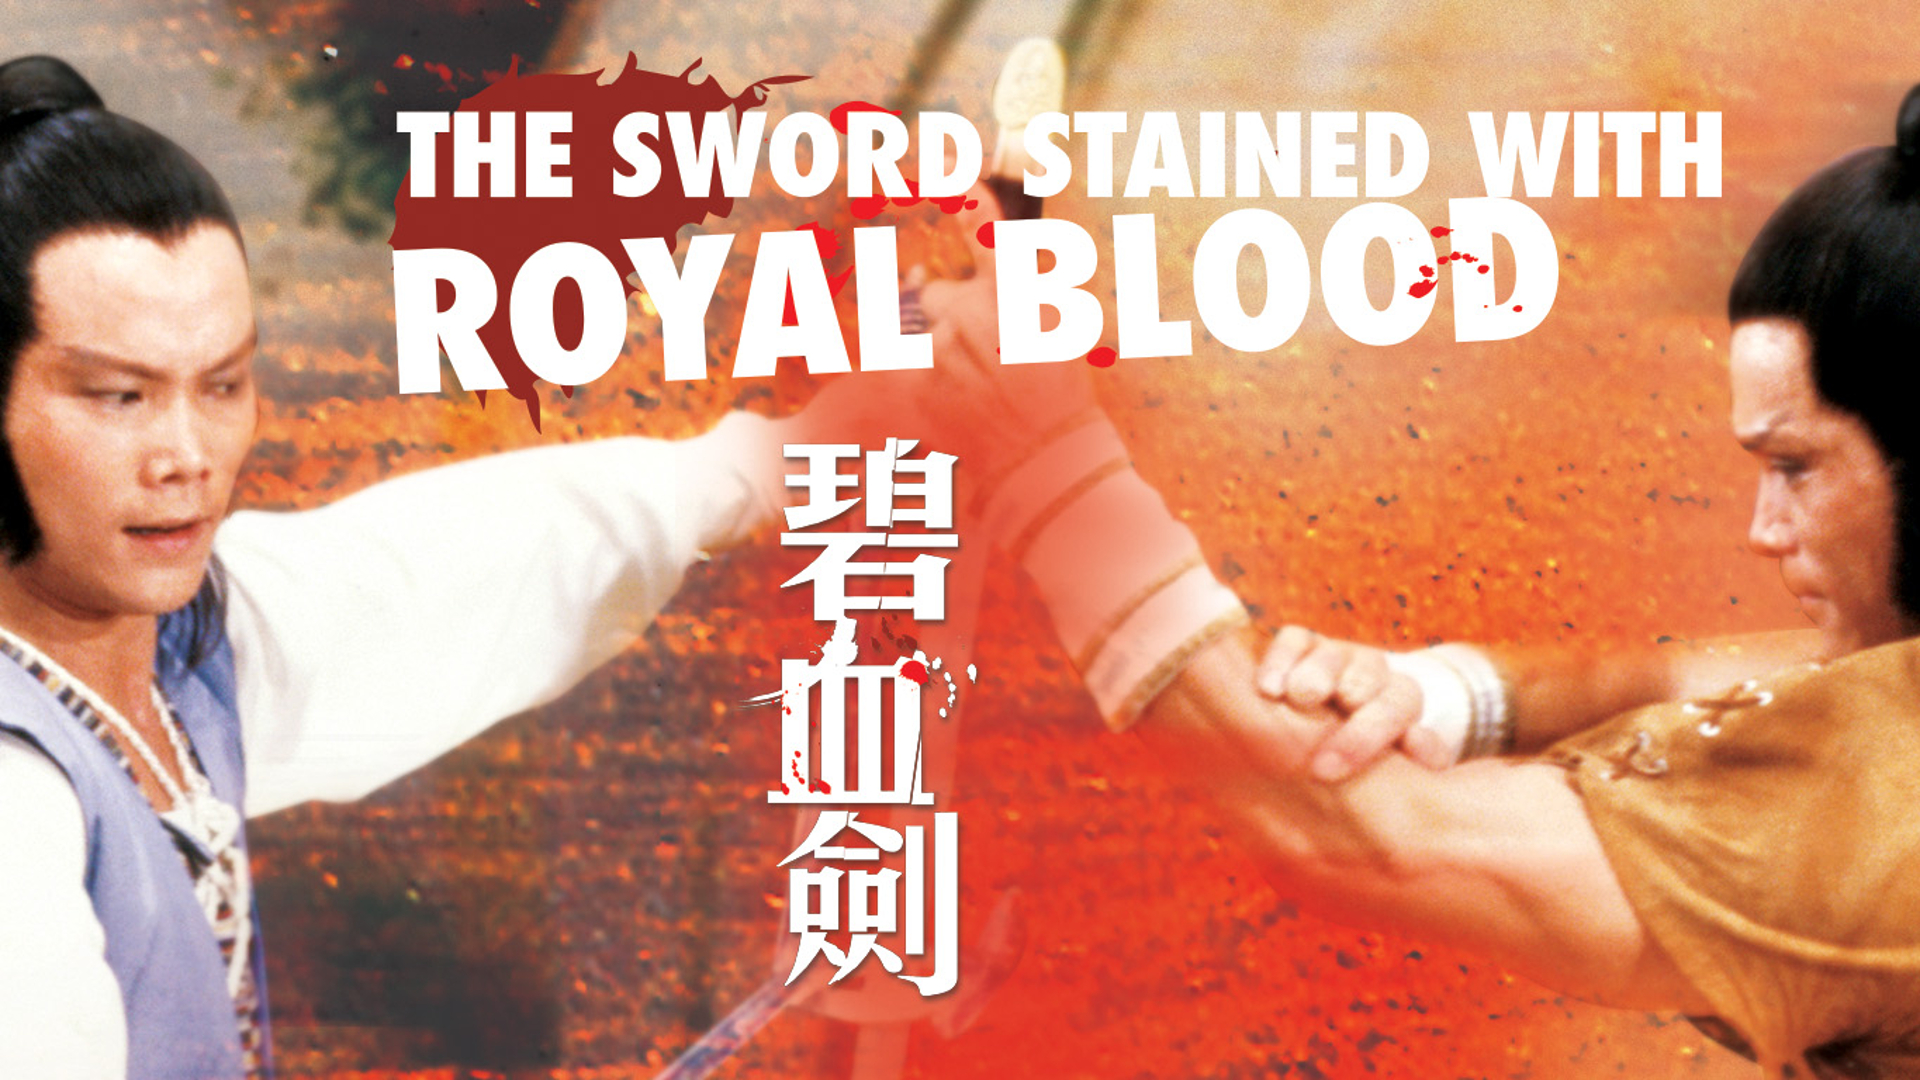 The Sword Stained with Royal Blood